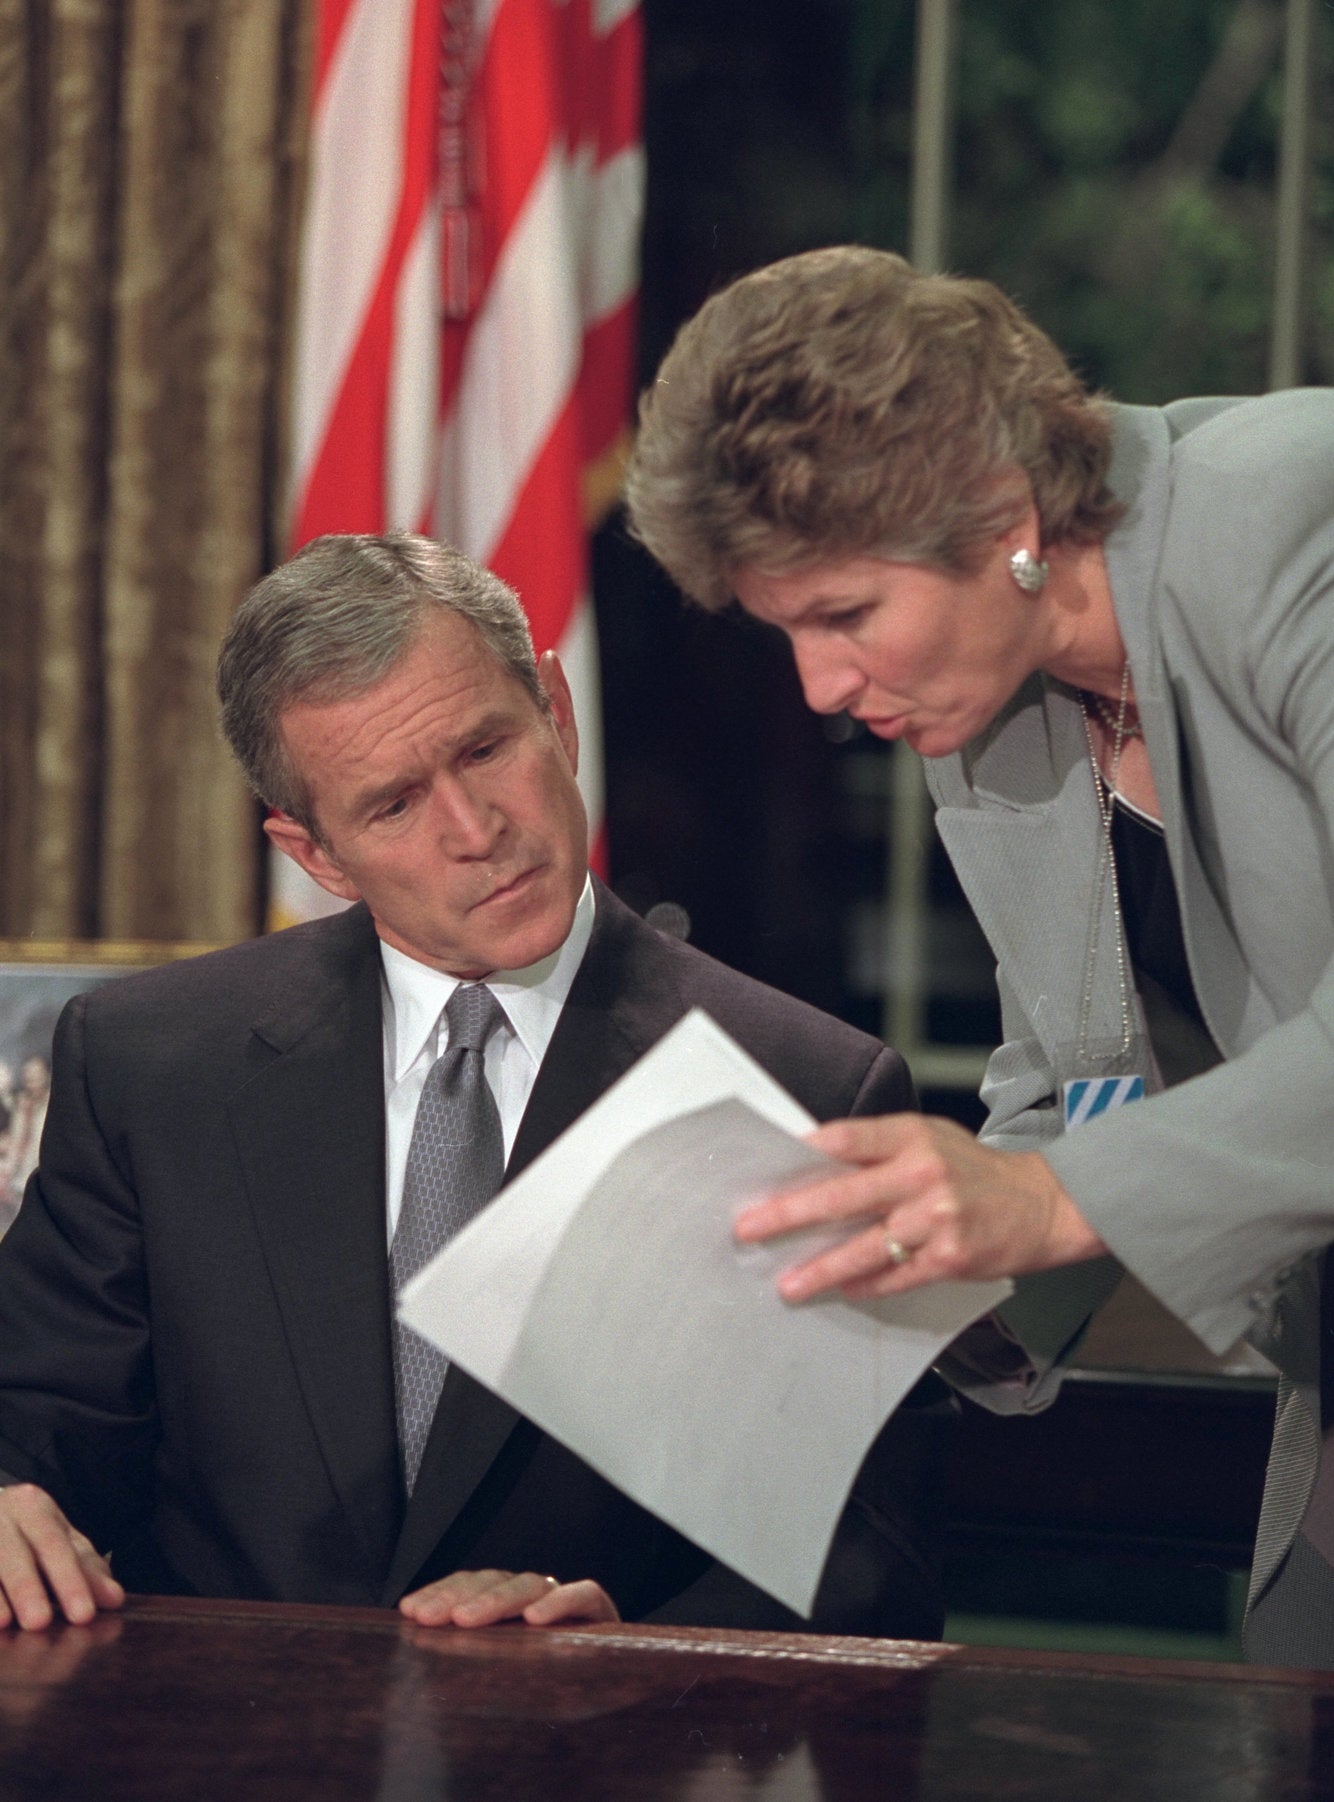 Photos show moment President George W. Bush learned of the 9/11 attacks